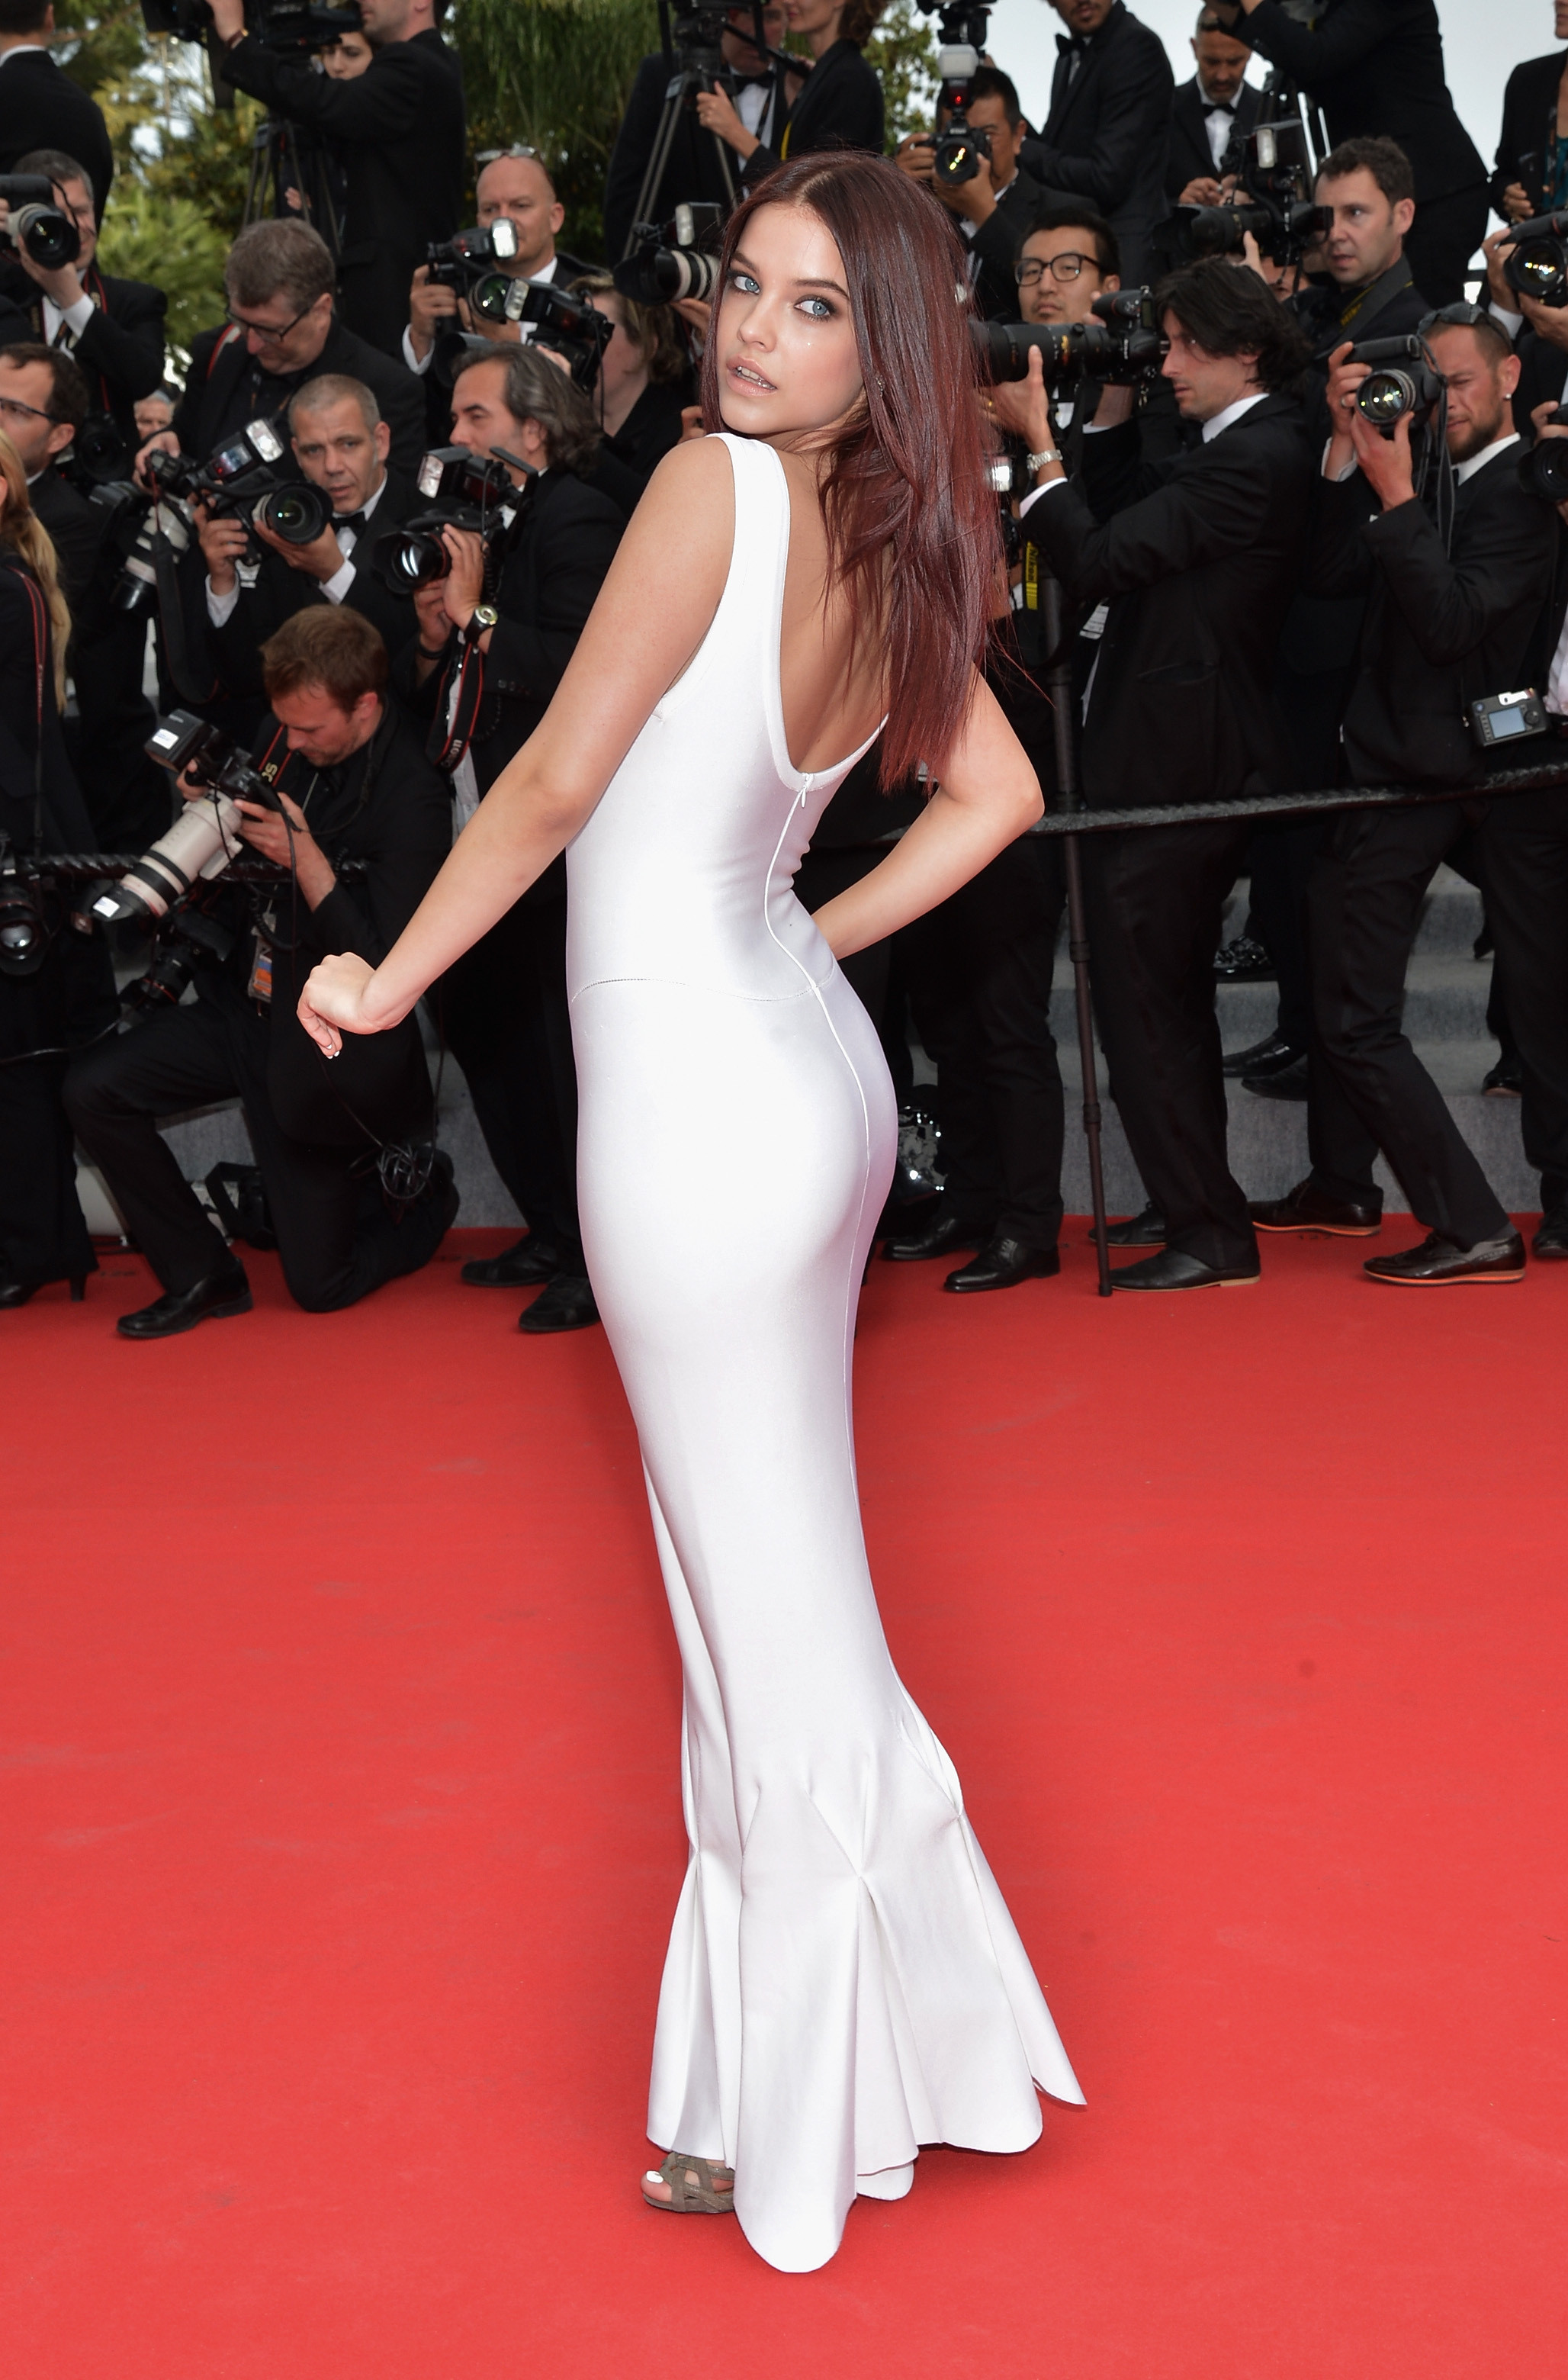 Barbara palvin wiki - Barbara palvin red carpet ...